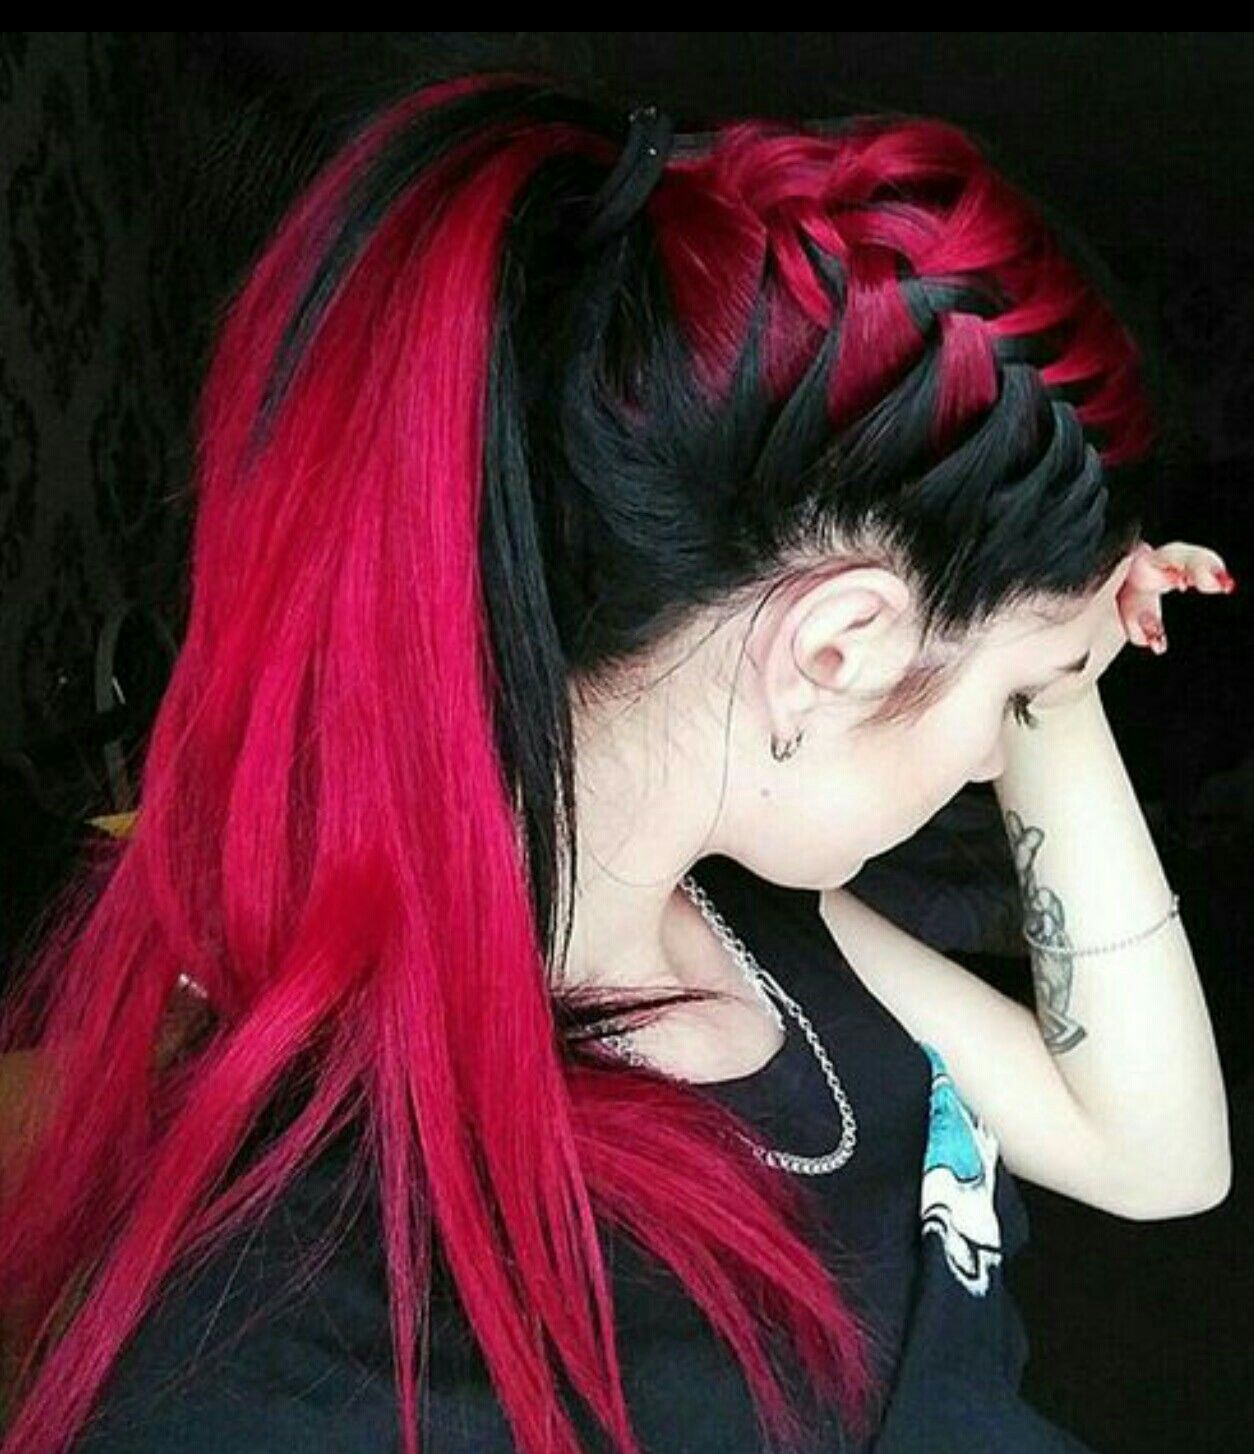 pin by gretchen cevicelov on hair dye ideas in 2018 | pinterest